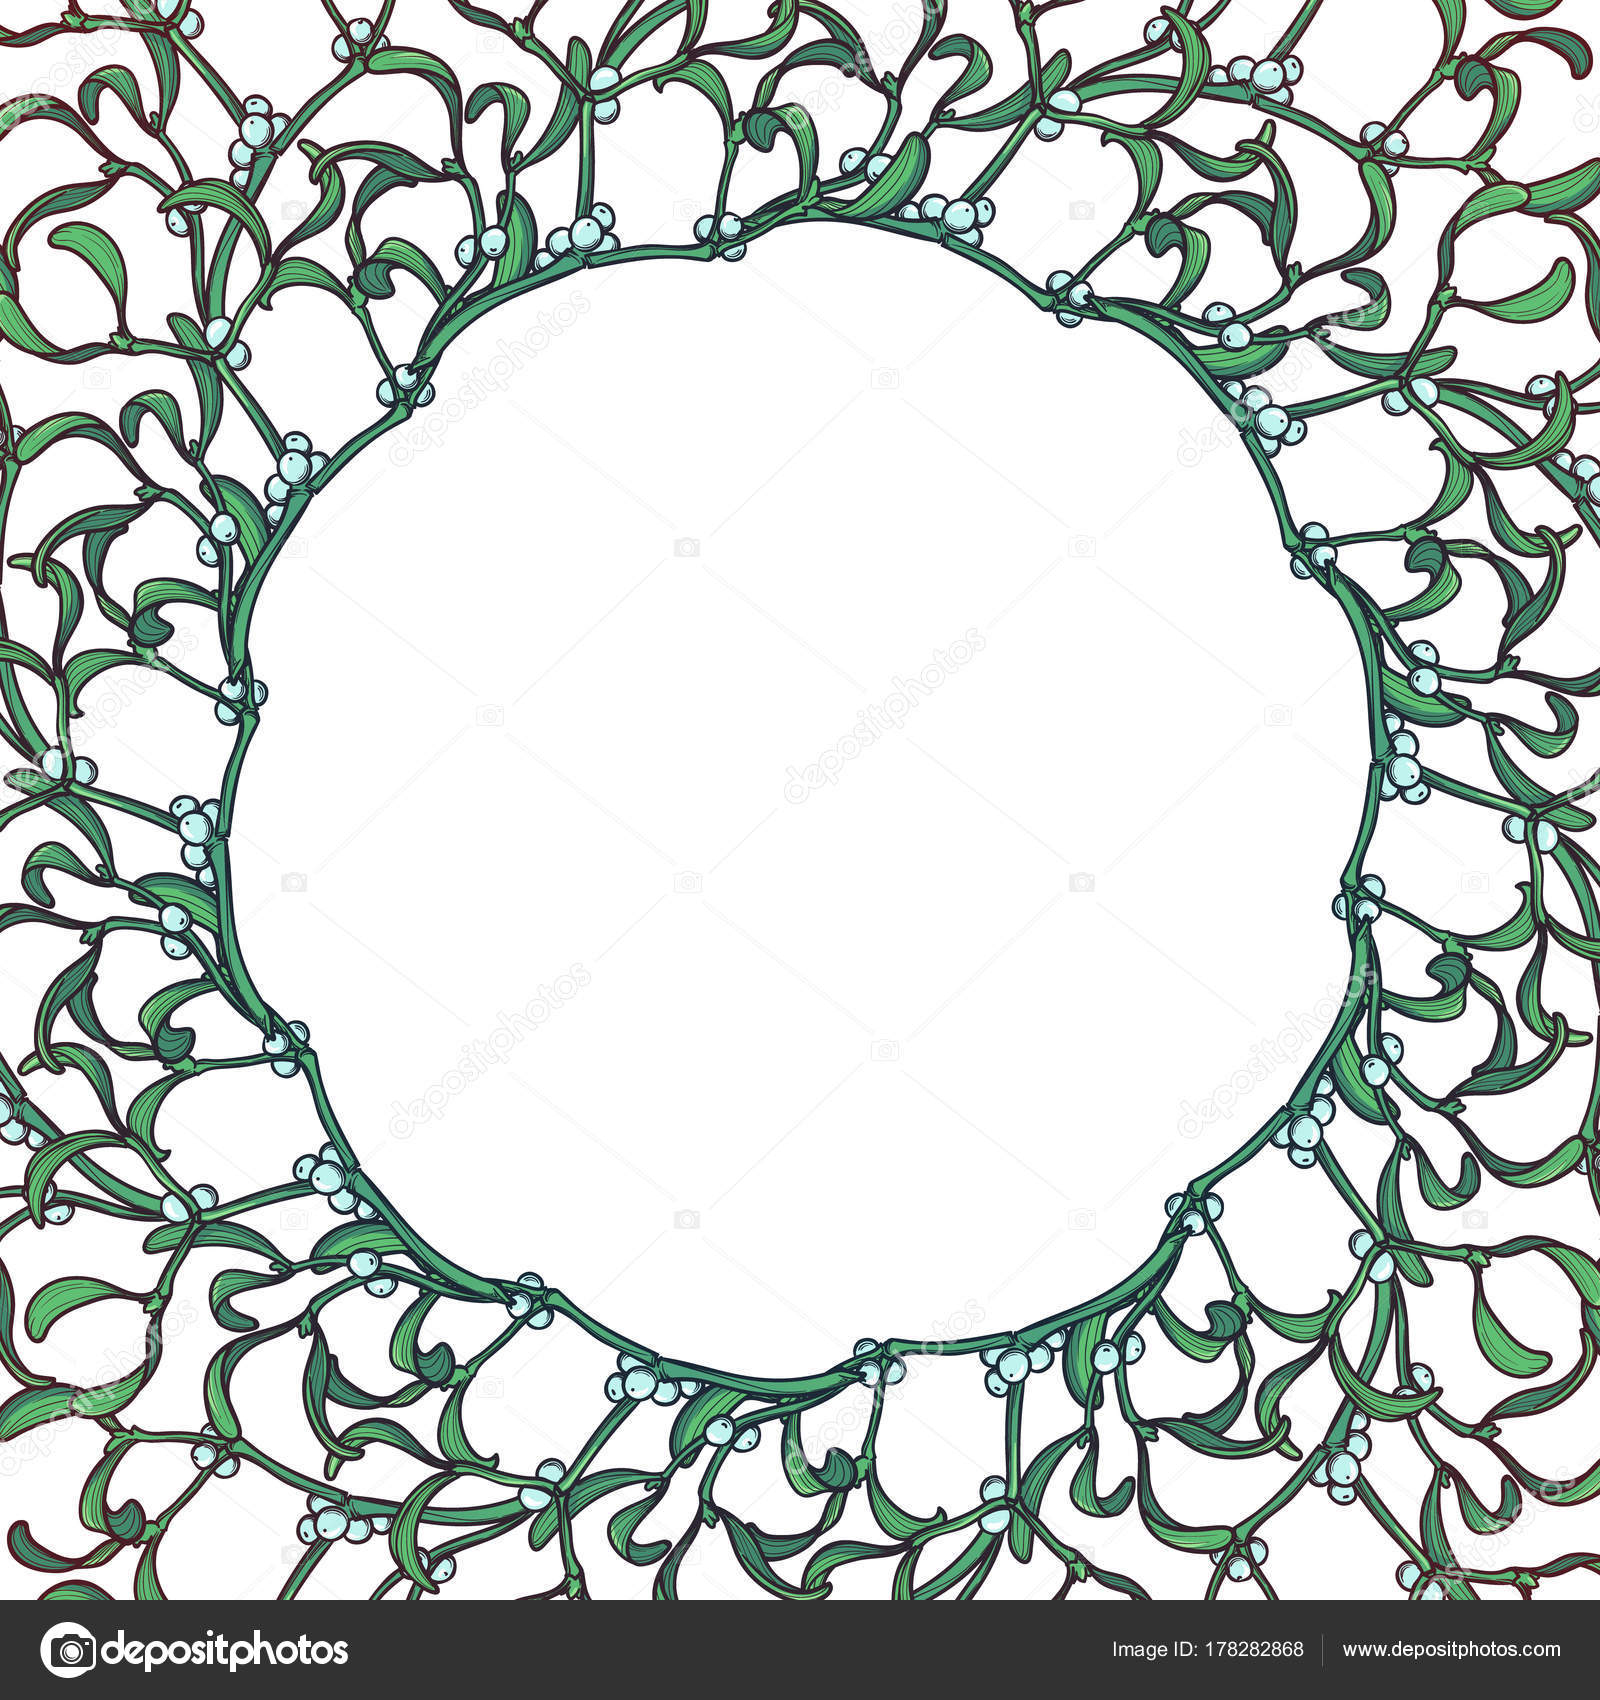 christmas floral circular frame mistletoe branches with leafs and